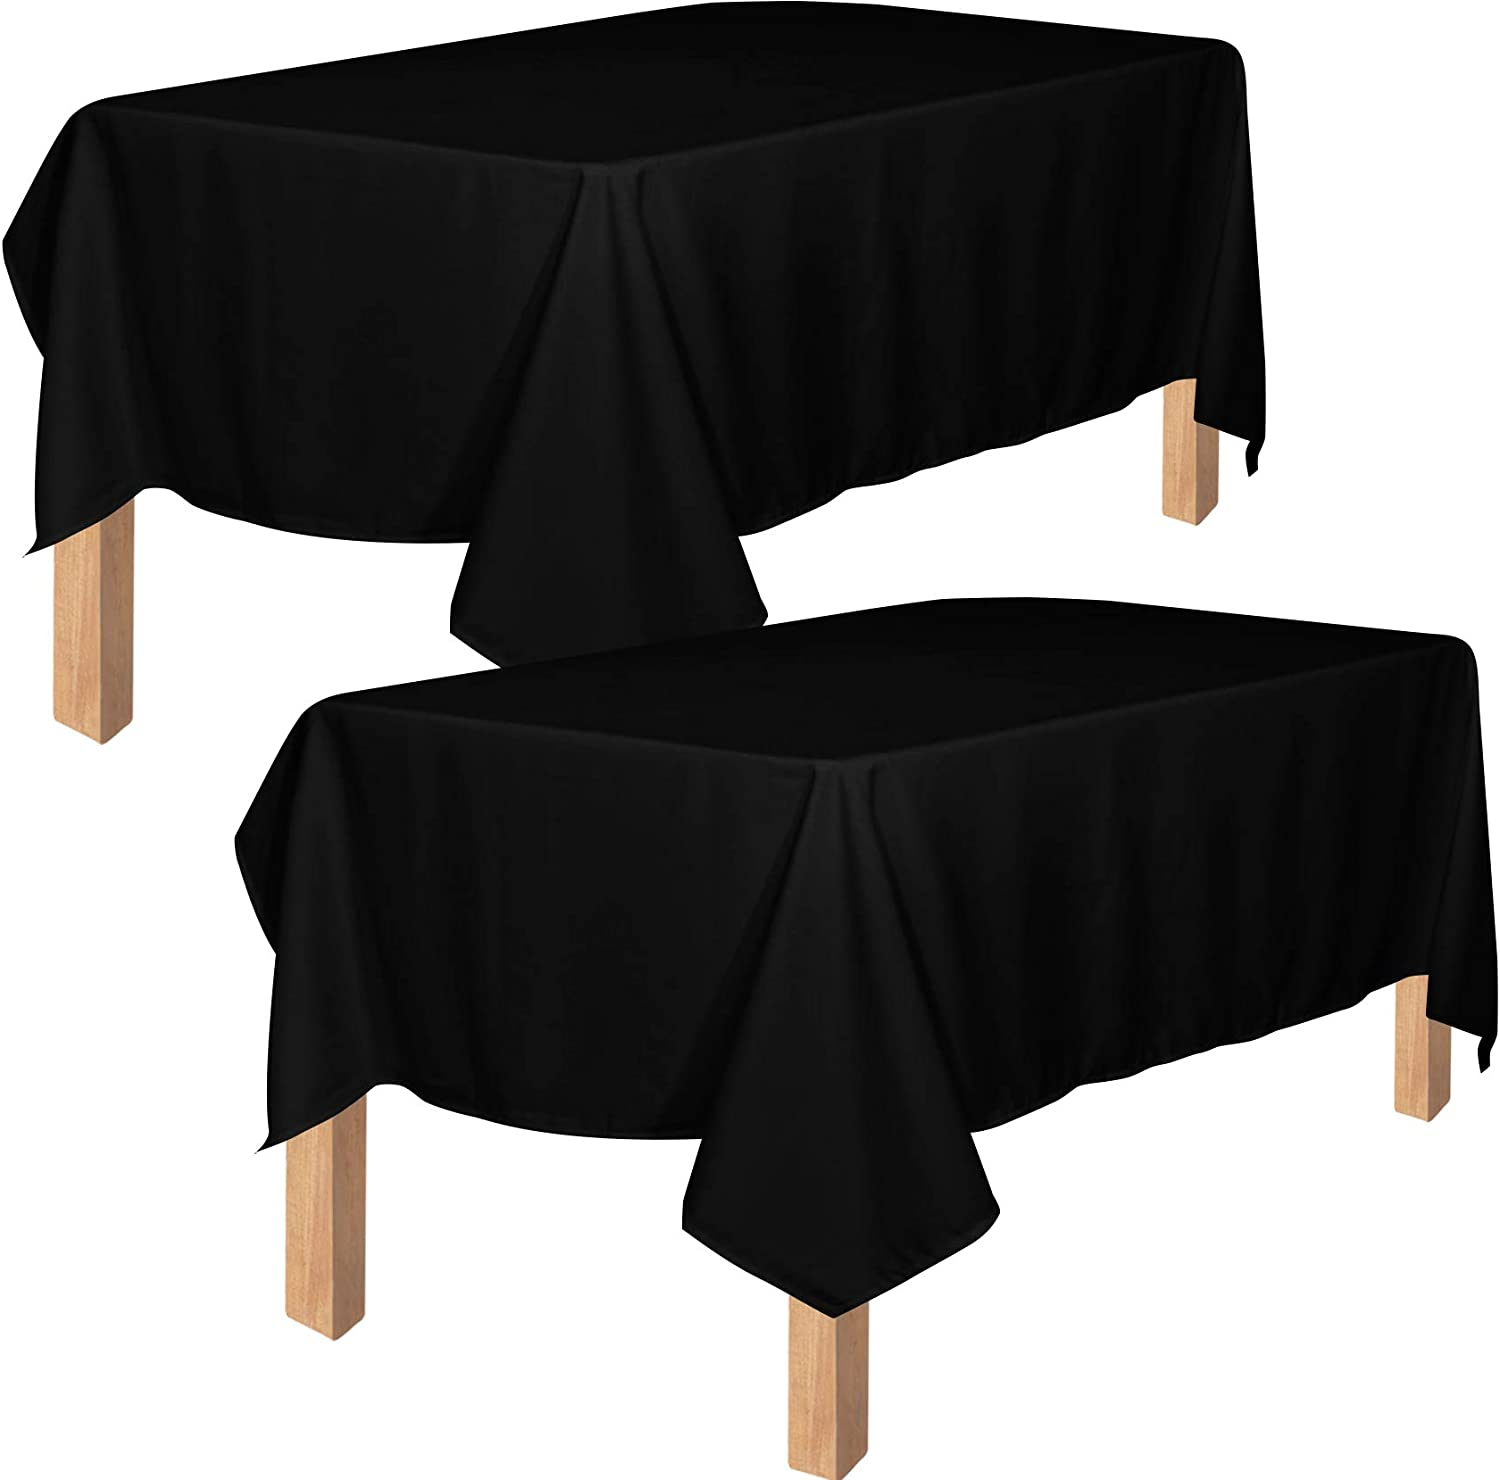 Utopia Kitchen Polyester Tablecloth – 60 x 102 Inches Table Cover - Machine Washable - Great for Parties, Events, Wedding and Restaurants (Pack of 2, Black)